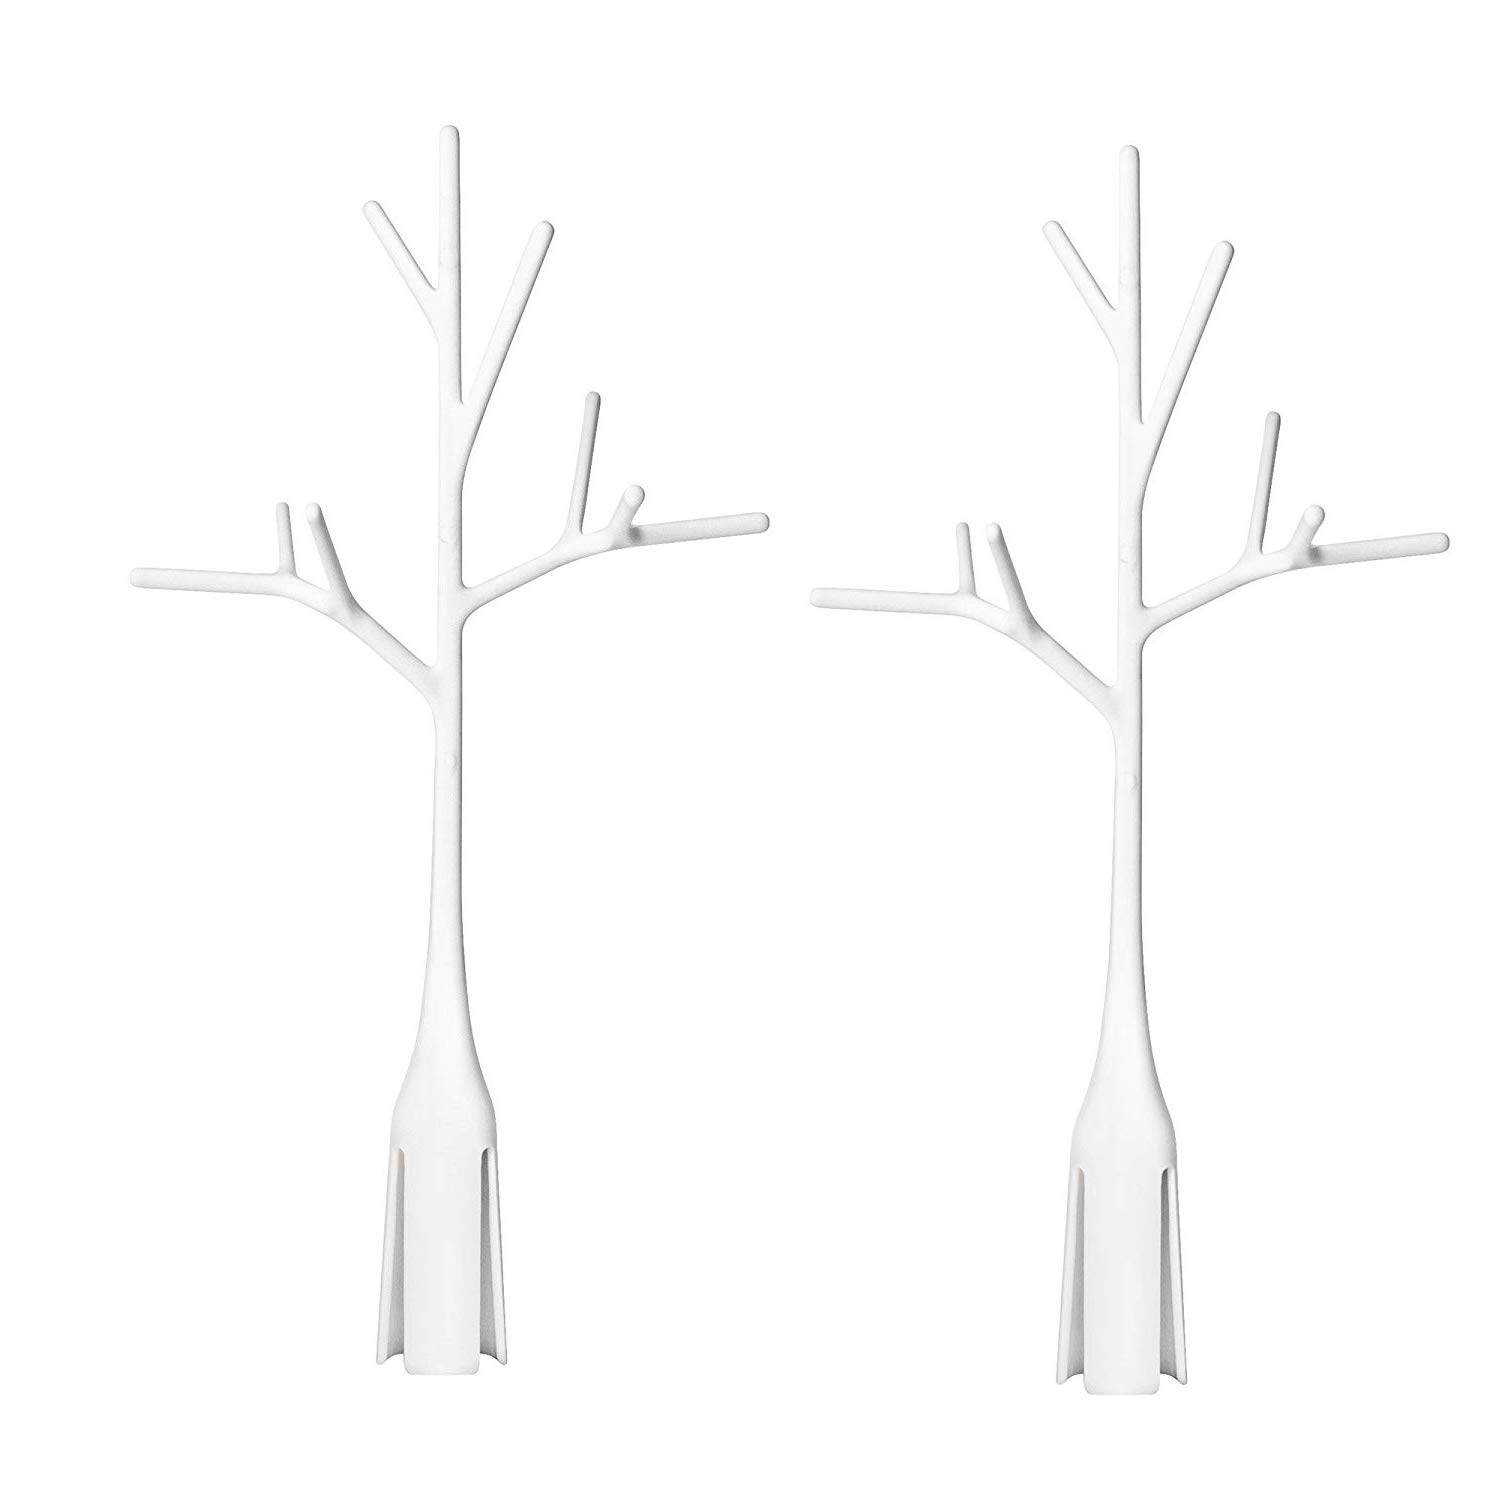 Twig Grass and Lawn Drying Rack Accessory, White,Twig White (2 Pack) by Boon